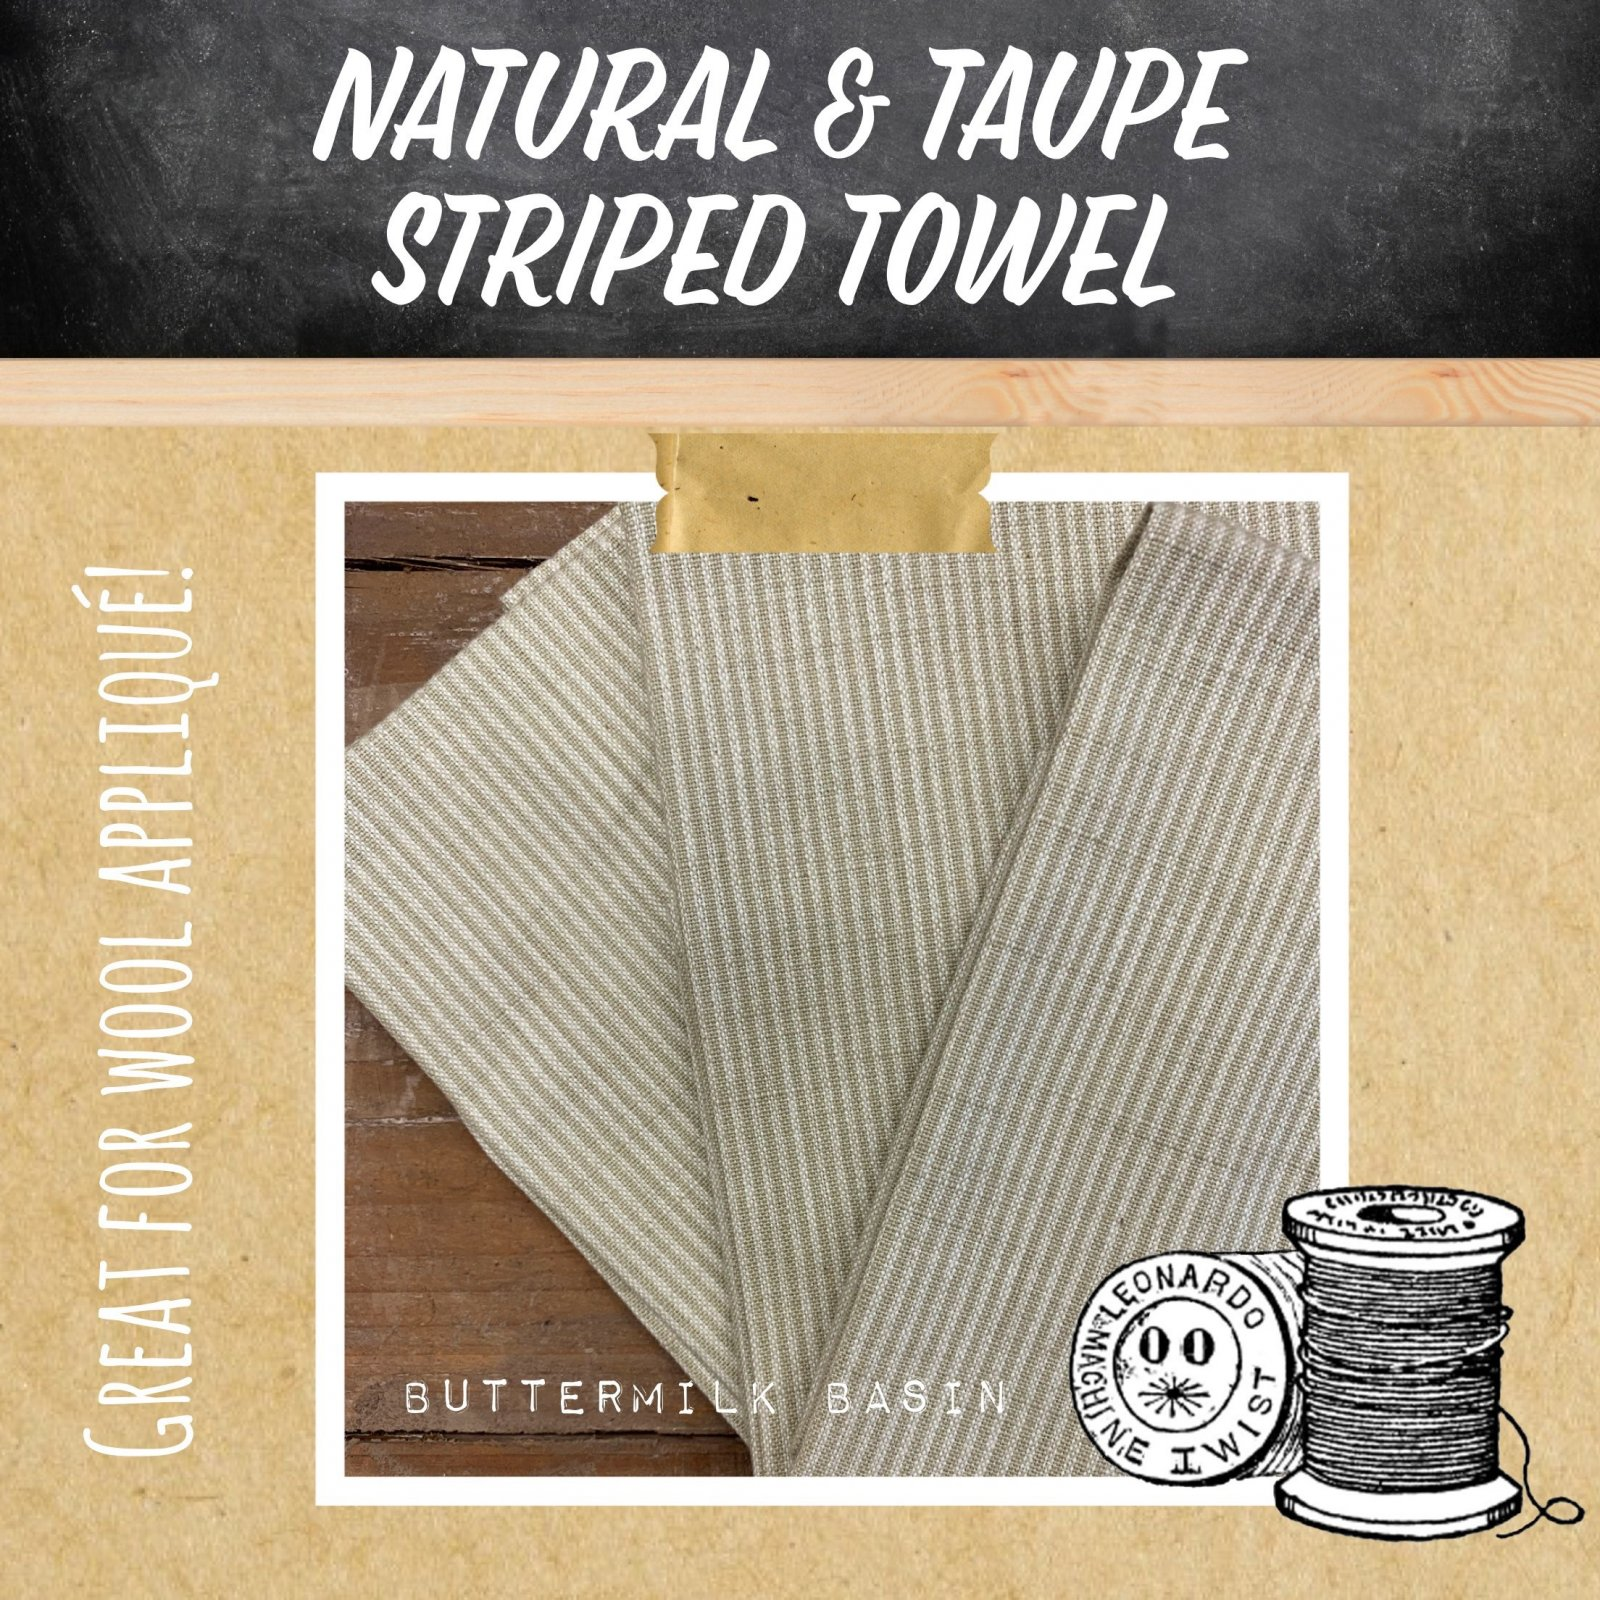 Natural & Taupe Striped Towel